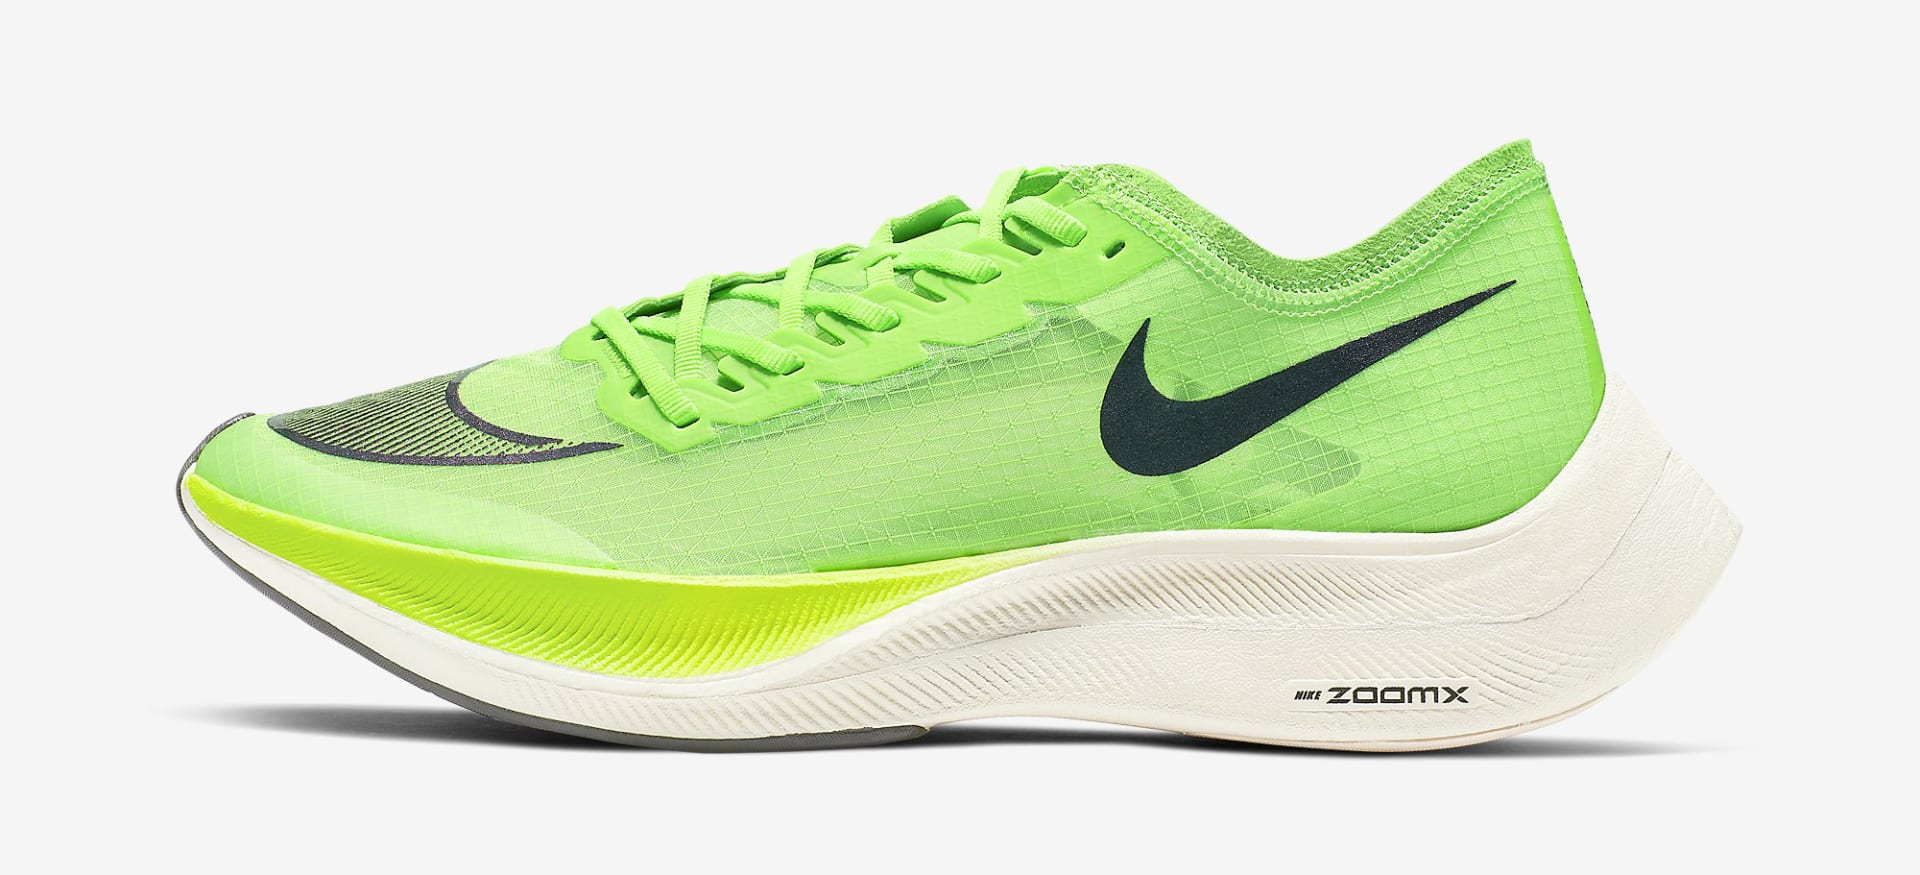 20 Hottest Sneakers Trends that People Will Love this Year